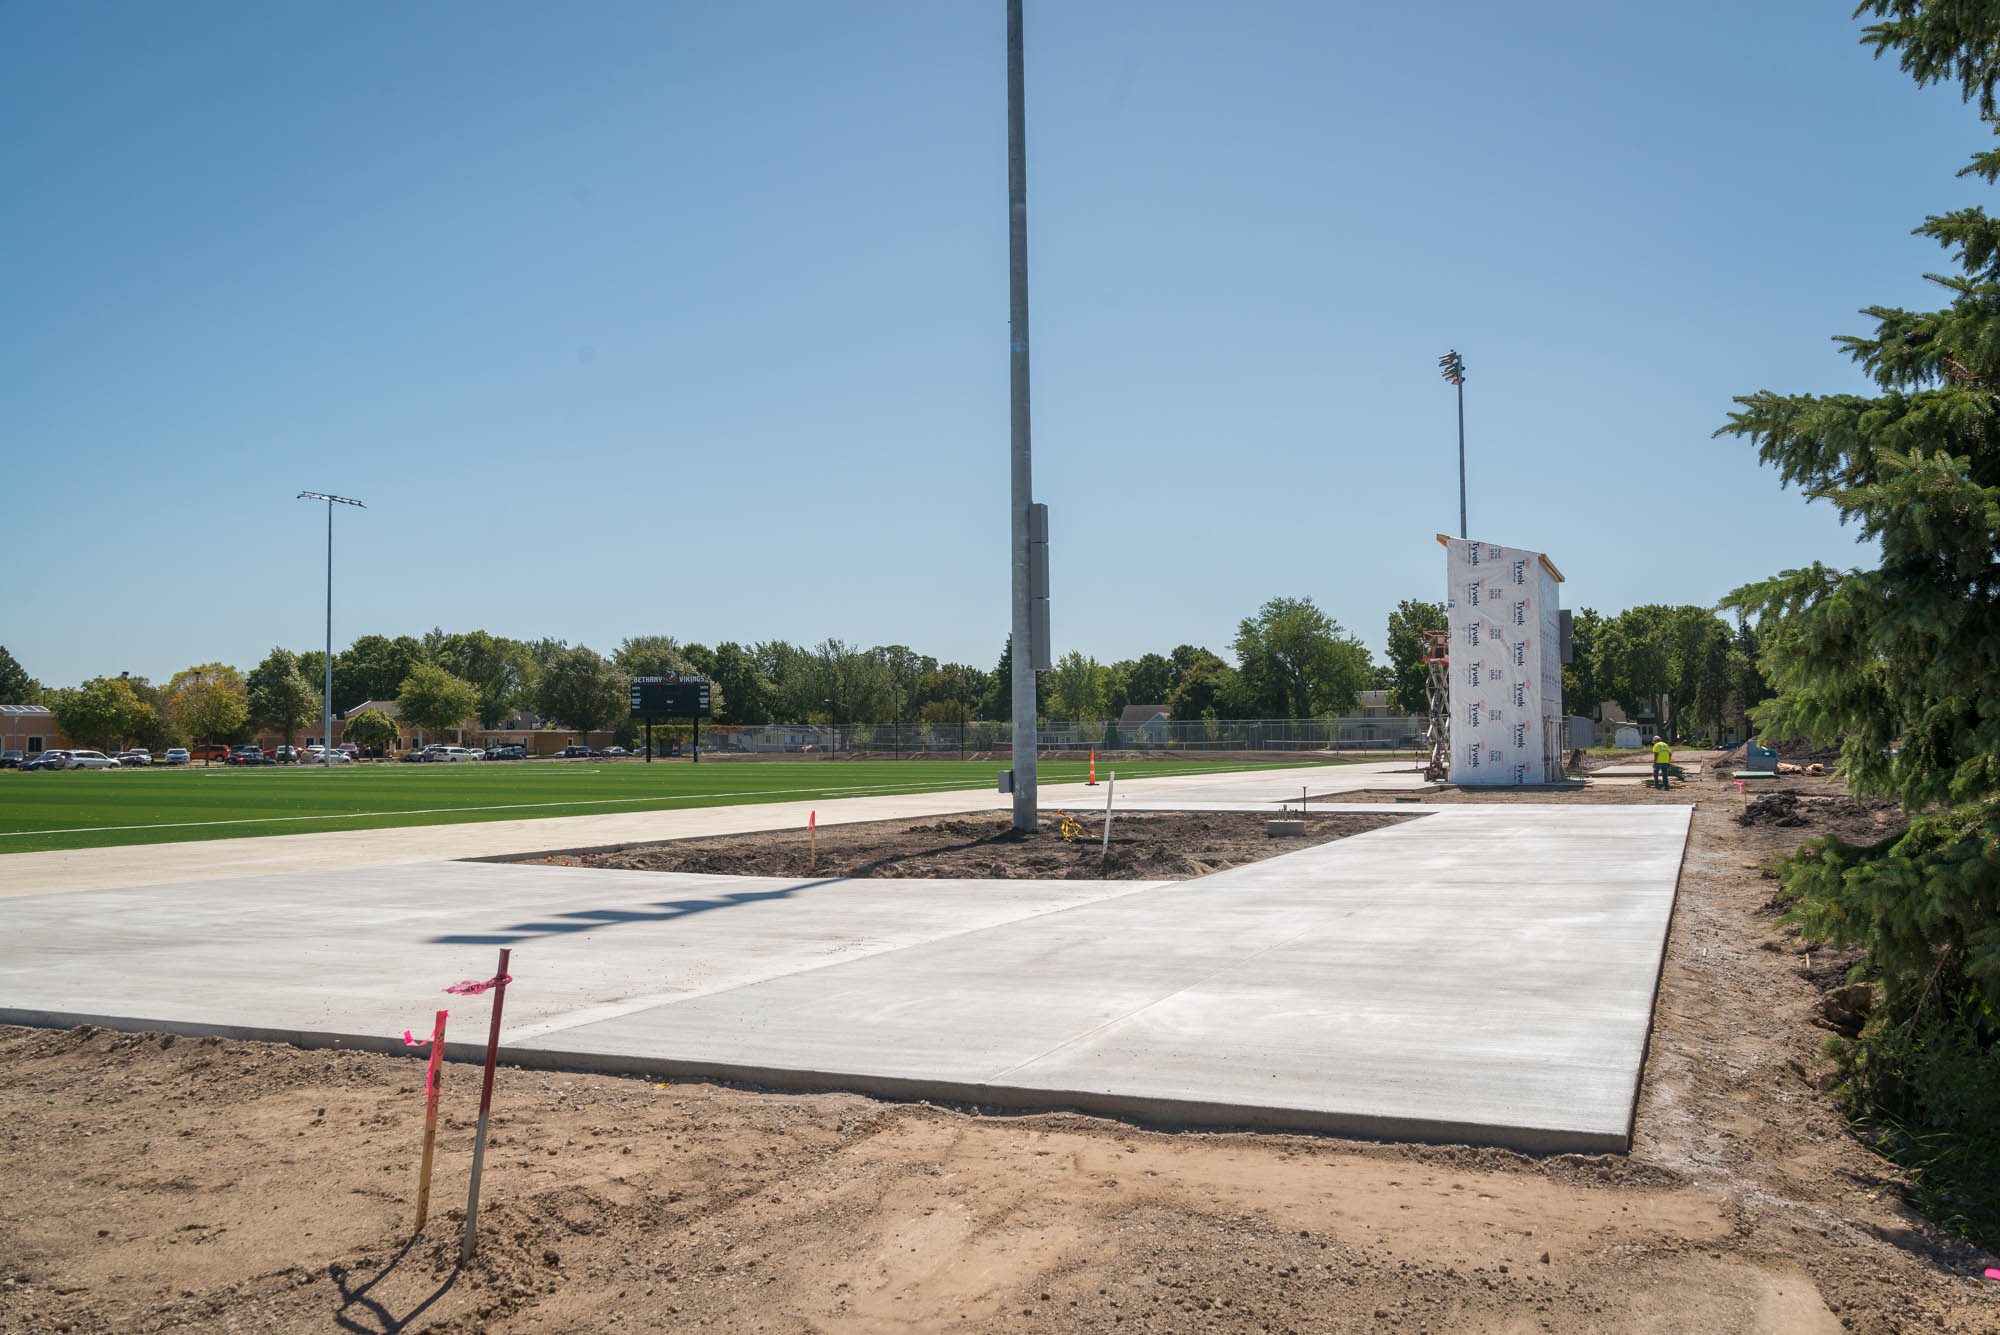 Concrete slabs surround a lightpole by the new pressbox at the new Bethany Soccer field.